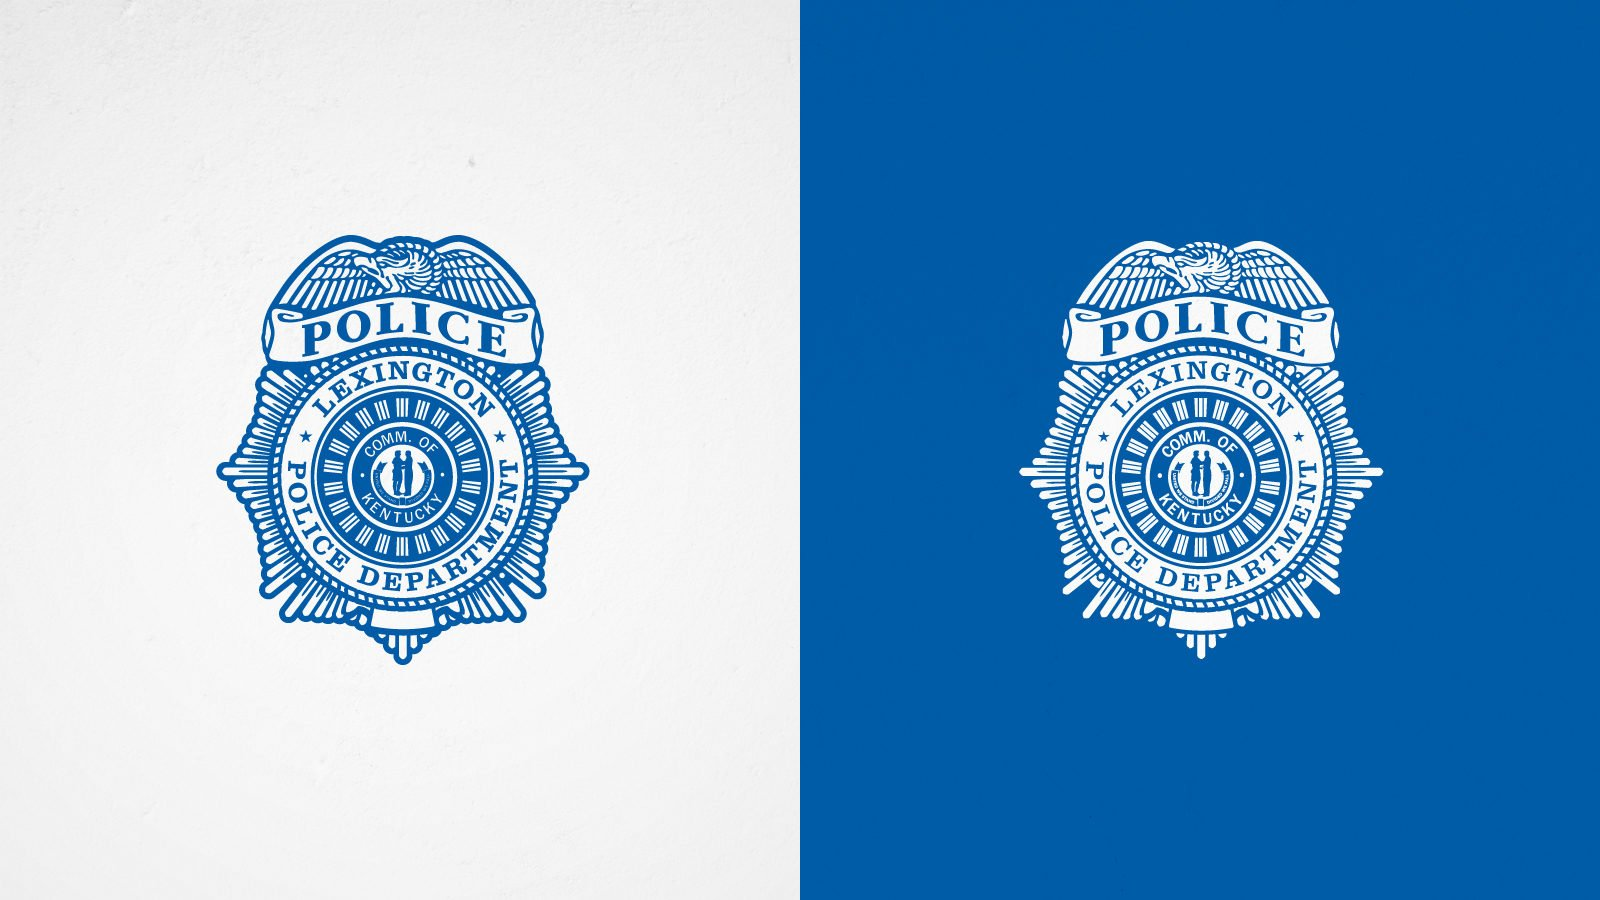 A Campaign for The City of Lexington Police By Bullhorn Creative